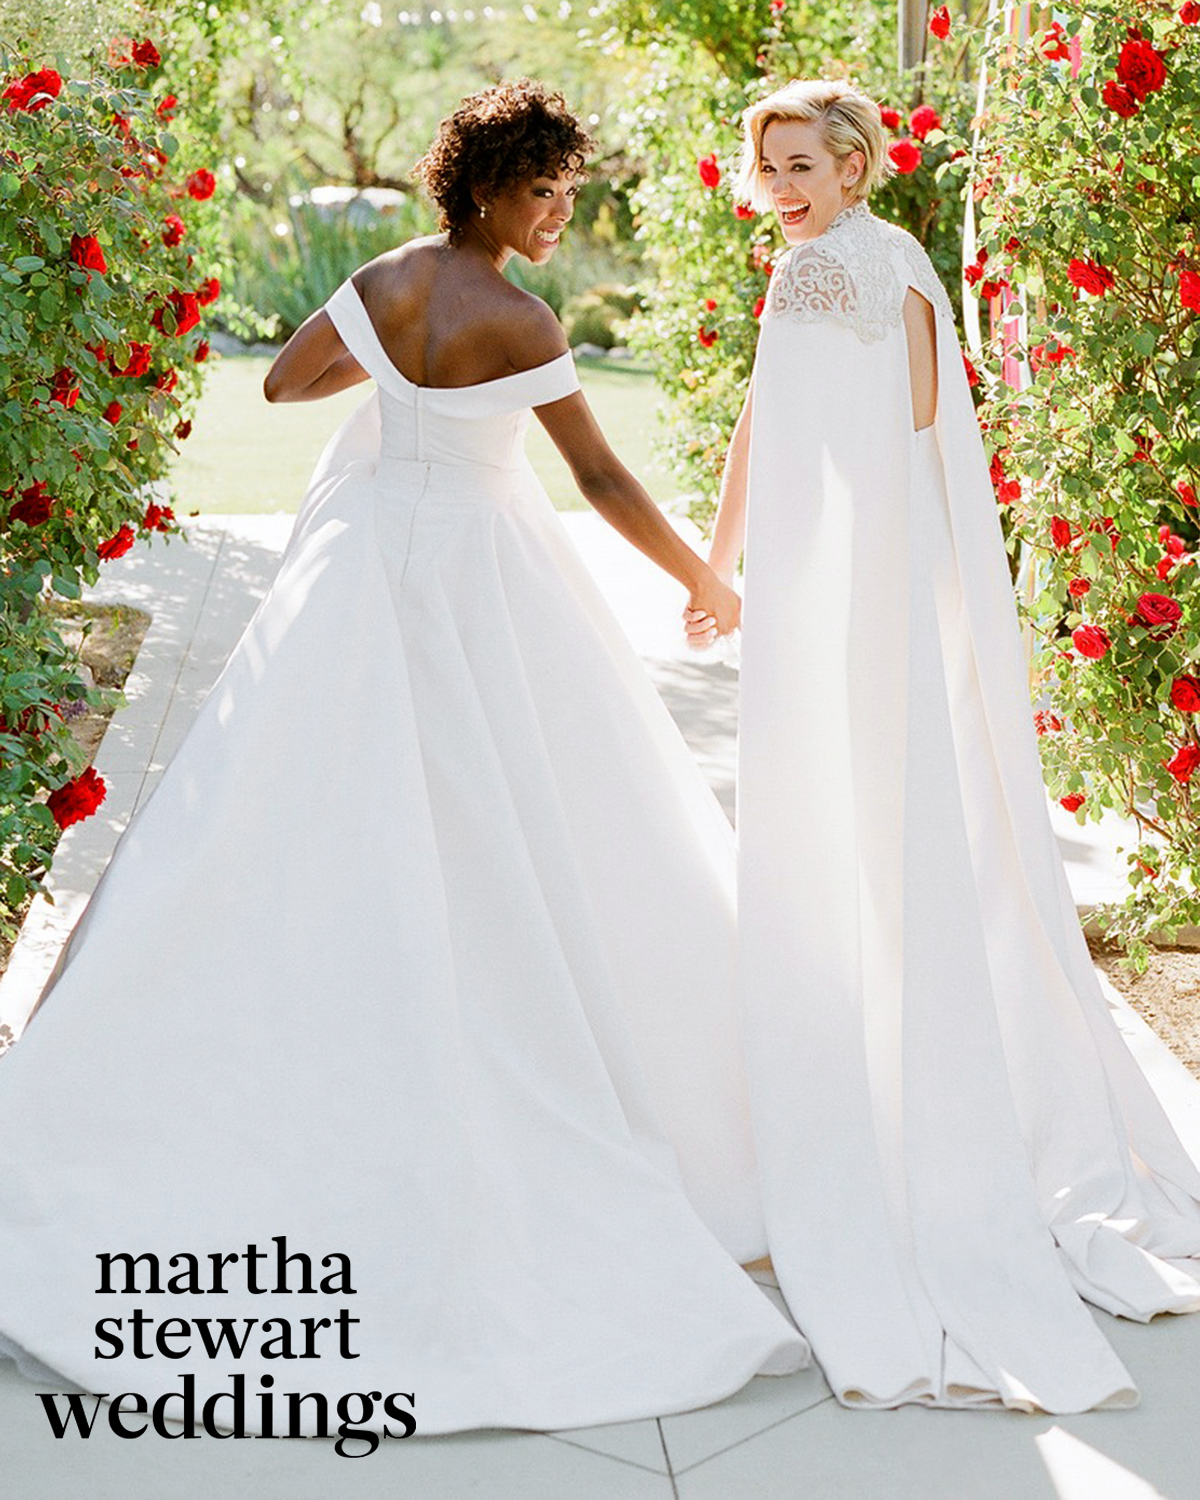 samira wiley lauren morelli wedding portrait